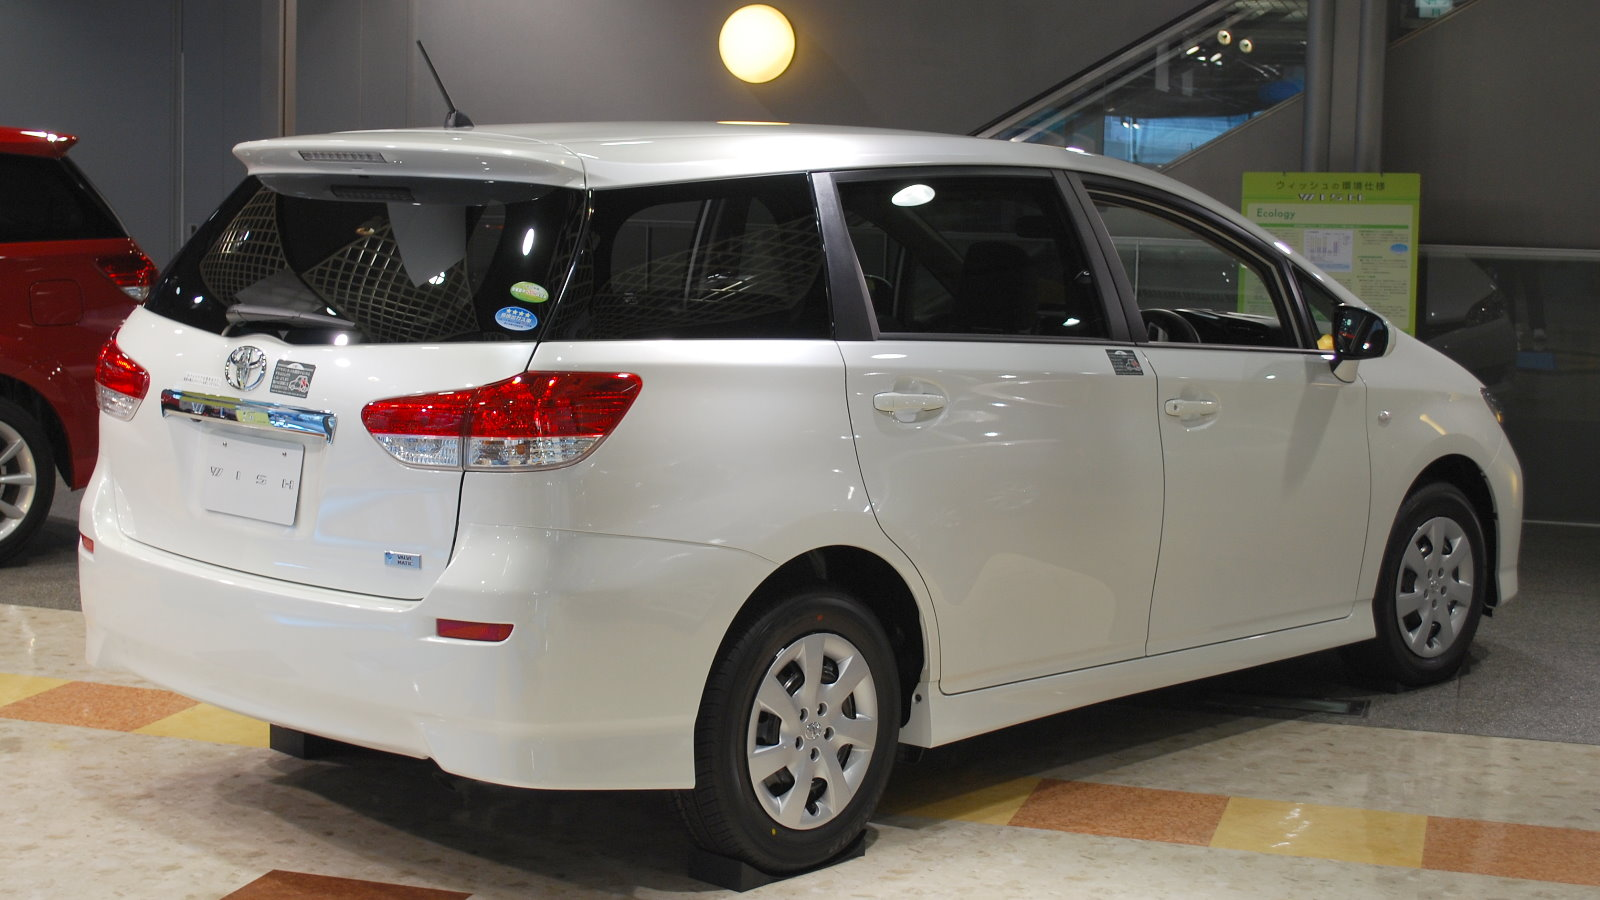 File:2009 Toyota Wish 06.jpg - 維基百科,自由的百科全書